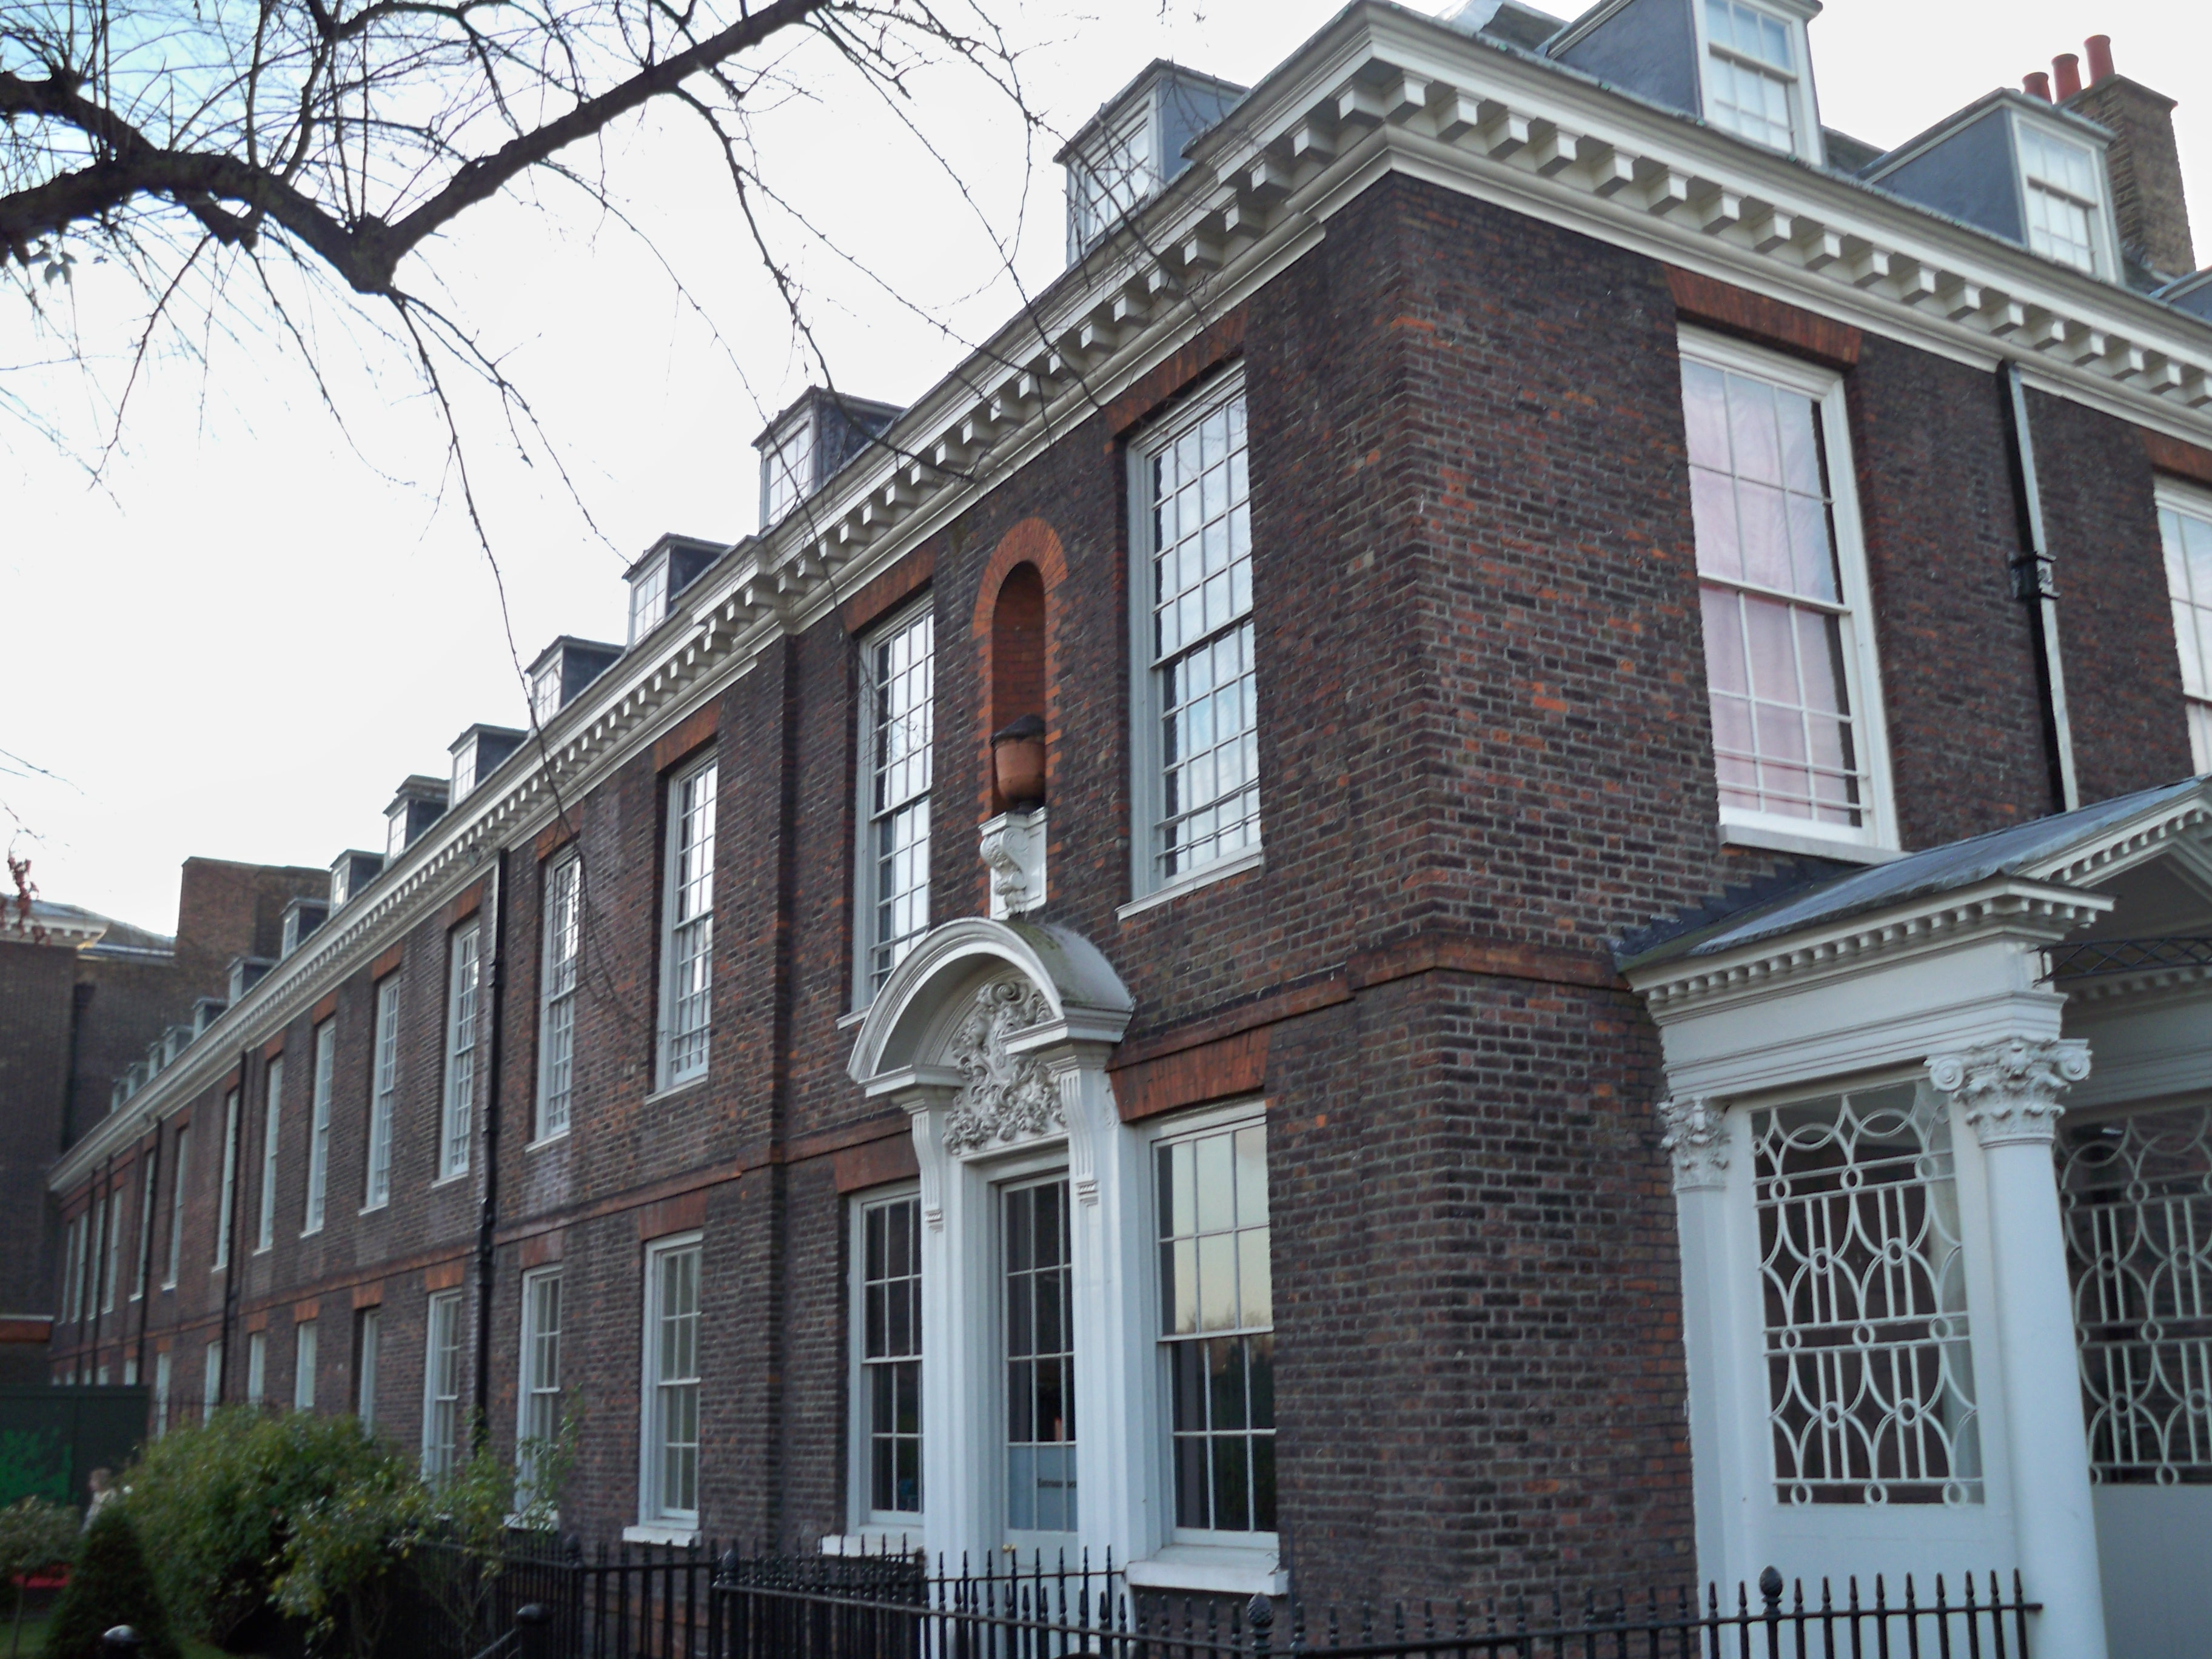 how to go to kensington palace